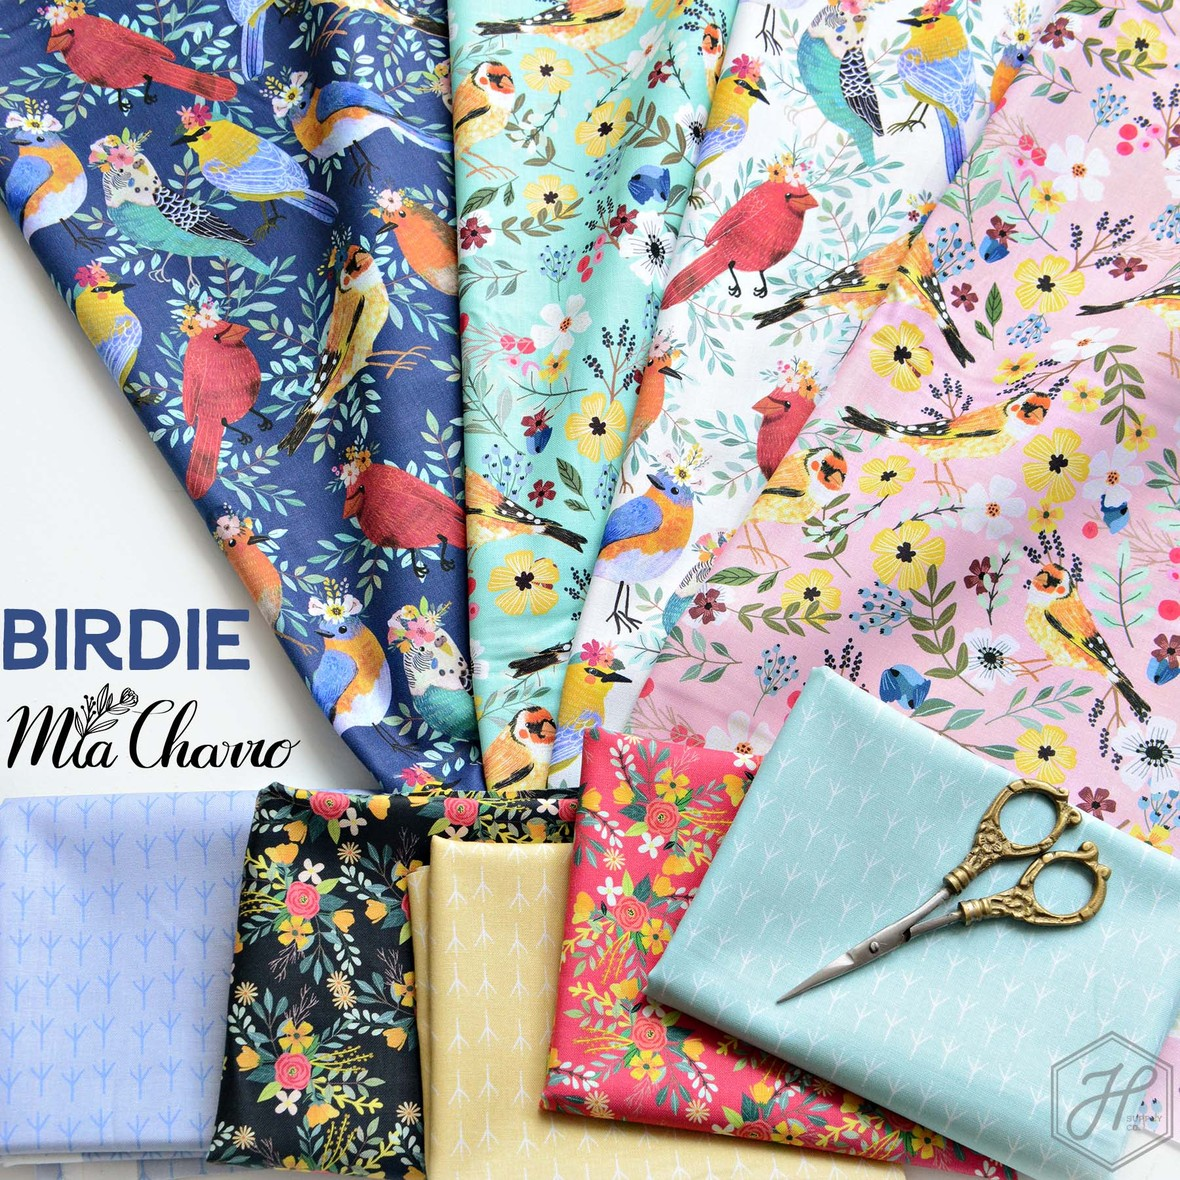 Birdie Fabric Mia Charro for Blend at Hawthorne Supply Co